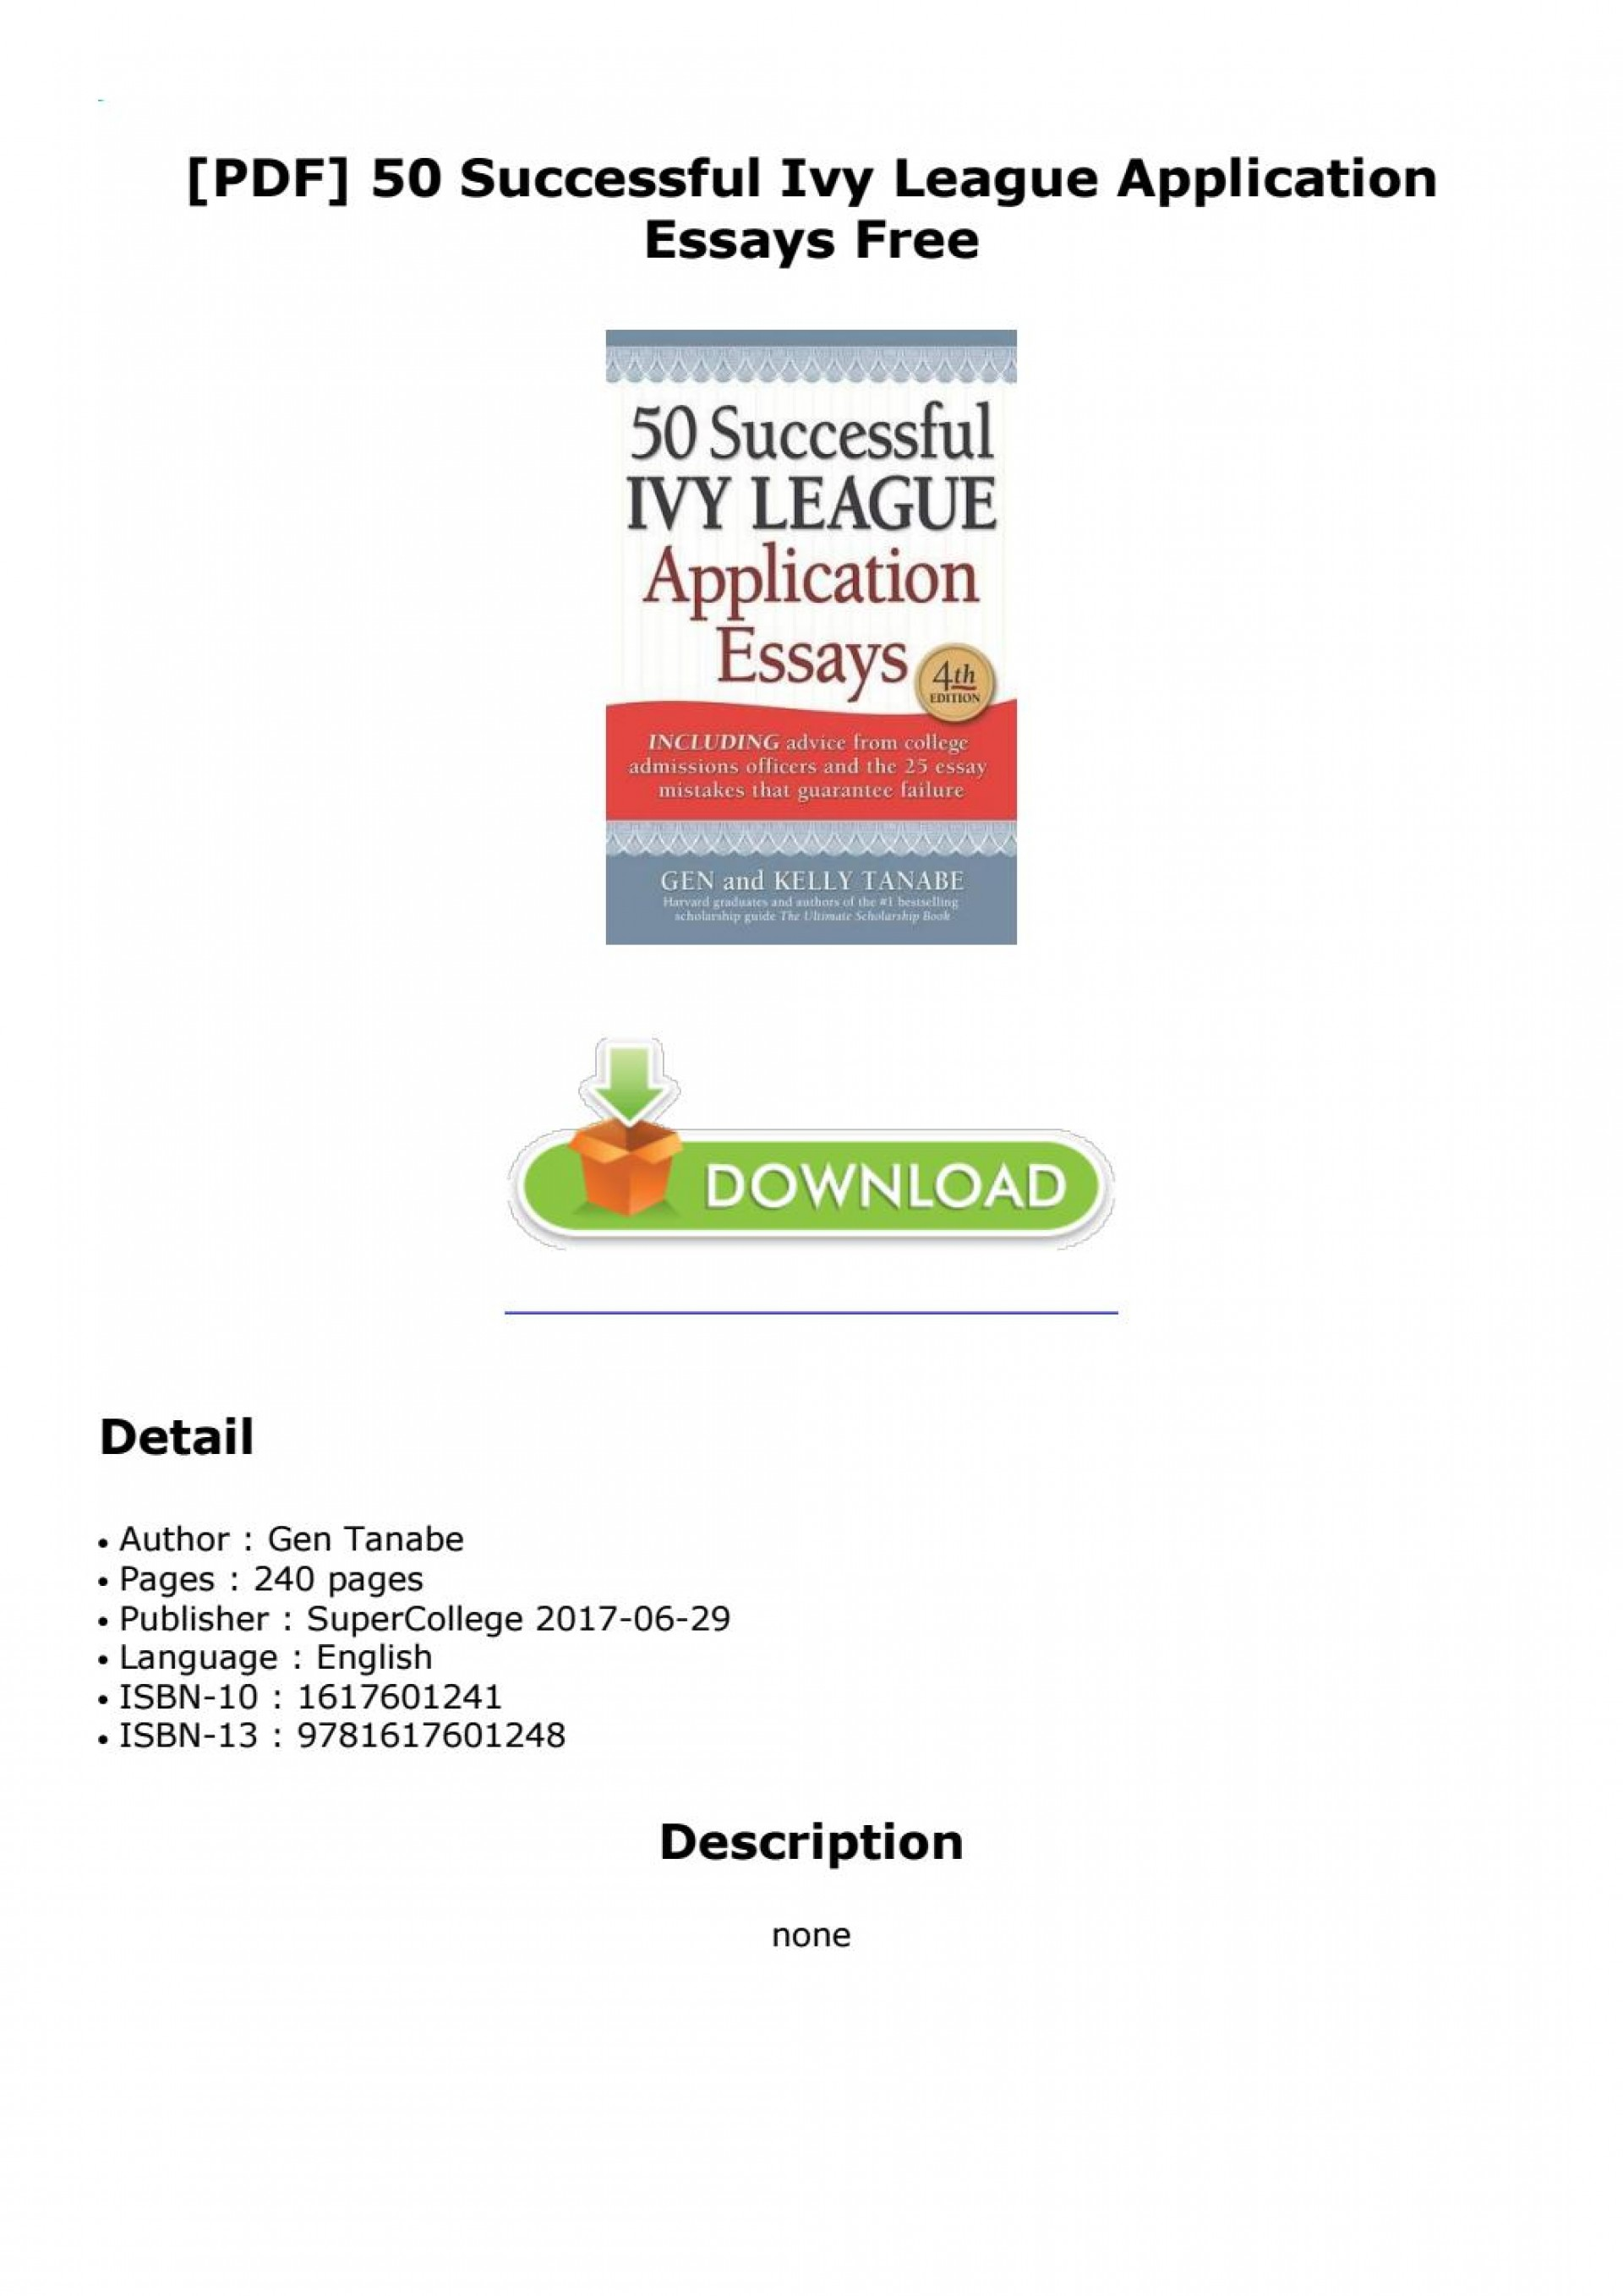 005 Successful Harvard Application Essays Pdf Page 1 Essay Impressive 50 Free 4th Edition Download 1920